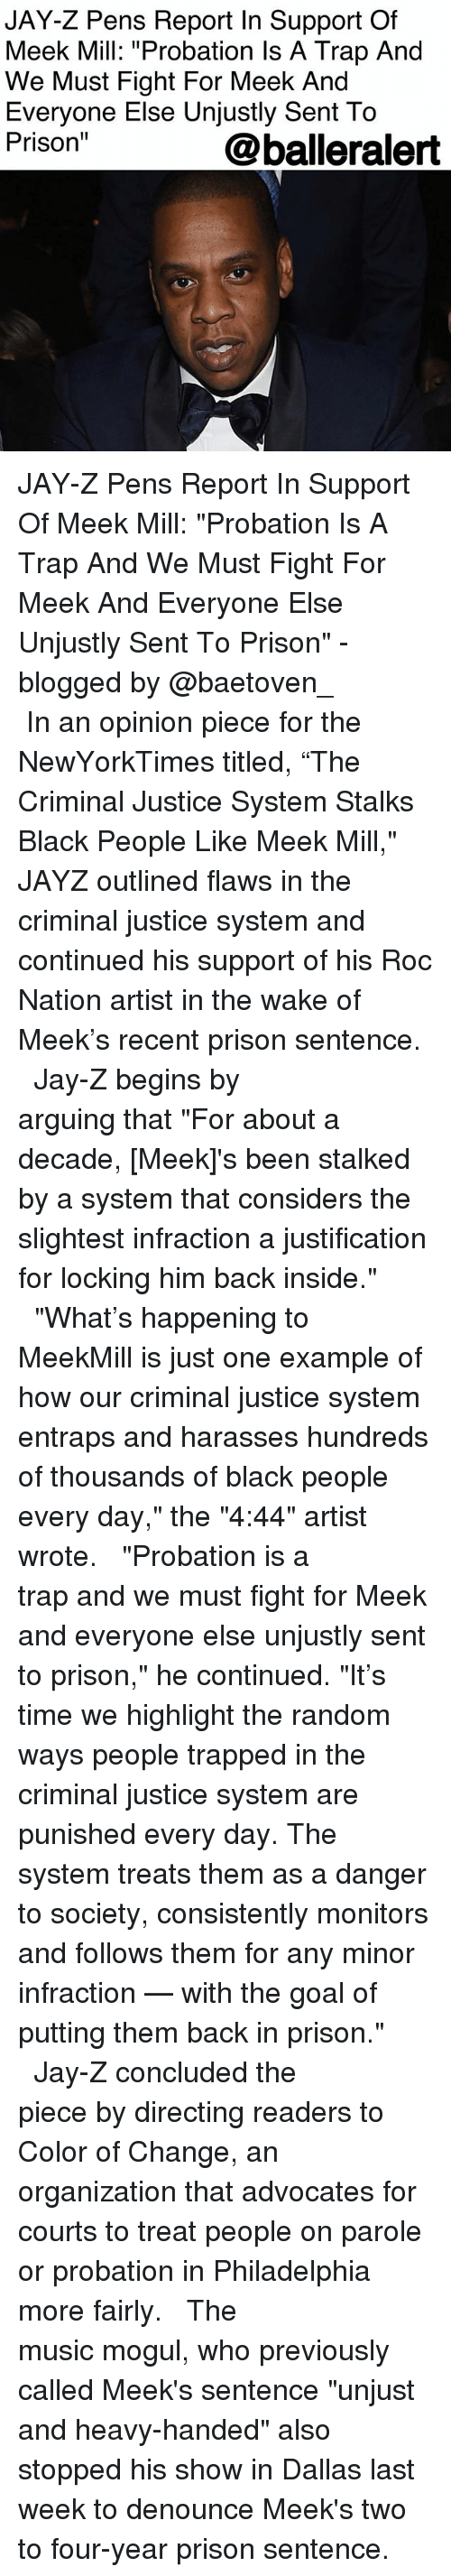 "Jay, Jay Z, and Meek Mill: JAY-Z Pens Report In Support Of  Meek Mill: ""Probation ls A Trap And  We Must Fight For Meek And  Everyone Else Unjustly Sent To  Prison""  @balleralert JAY-Z Pens Report In Support Of Meek Mill: ""Probation Is A Trap And We Must Fight For Meek And Everyone Else Unjustly Sent To Prison"" - blogged by @baetoven_ ⠀⠀⠀⠀⠀⠀⠀ ⠀⠀⠀⠀⠀⠀⠀ In an opinion piece for the NewYorkTimes titled, ""The Criminal Justice System Stalks Black People Like Meek Mill,"" JAYZ outlined flaws in the criminal justice system and continued his support of his Roc Nation artist in the wake of Meek's recent prison sentence. ⠀⠀⠀⠀⠀⠀⠀ ⠀⠀⠀⠀⠀⠀⠀ Jay-Z begins by arguing that ""For about a decade, [Meek]'s been stalked by a system that considers the slightest infraction a justification for locking him back inside."" ⠀⠀⠀⠀⠀⠀⠀ ⠀⠀⠀⠀⠀⠀⠀ ""What's happening to MeekMill is just one example of how our criminal justice system entraps and harasses hundreds of thousands of black people every day,"" the ""4:44"" artist wrote. ⠀⠀⠀⠀⠀⠀⠀ ⠀⠀⠀⠀⠀⠀⠀ ""Probation is a trap and we must fight for Meek and everyone else unjustly sent to prison,"" he continued. ""It's time we highlight the random ways people trapped in the criminal justice system are punished every day. The system treats them as a danger to society, consistently monitors and follows them for any minor infraction — with the goal of putting them back in prison."" ⠀⠀⠀⠀⠀⠀⠀ ⠀⠀⠀⠀⠀⠀⠀ Jay-Z concluded the piece by directing readers to Color of Change, an organization that advocates for courts to treat people on parole or probation in Philadelphia more fairly. ⠀⠀⠀⠀⠀⠀⠀ ⠀⠀⠀⠀⠀⠀⠀ The music mogul, who previously called Meek's sentence ""unjust and heavy-handed"" also stopped his show in Dallas last week to denounce Meek's two to four-year prison sentence."